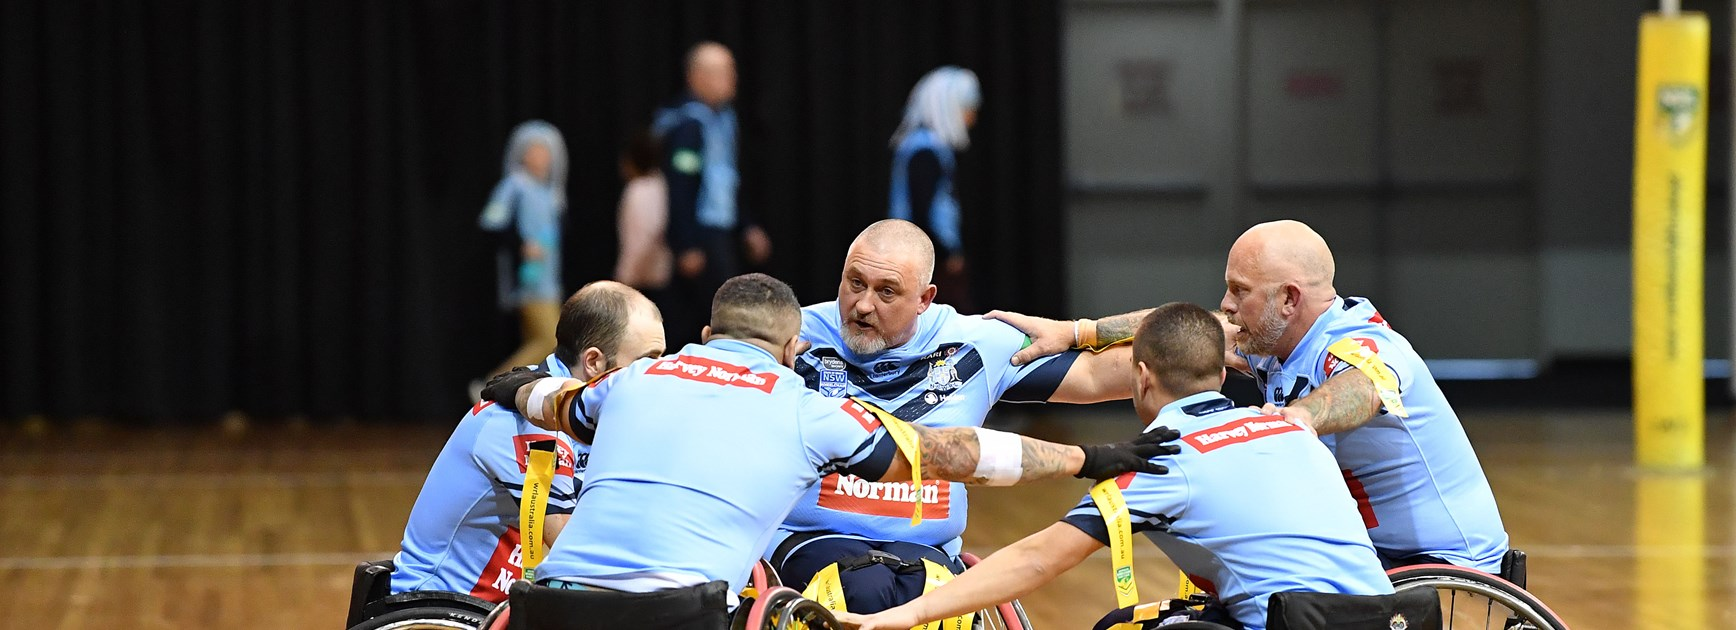 2020 Preview | NSW Wheelchair Rugby League